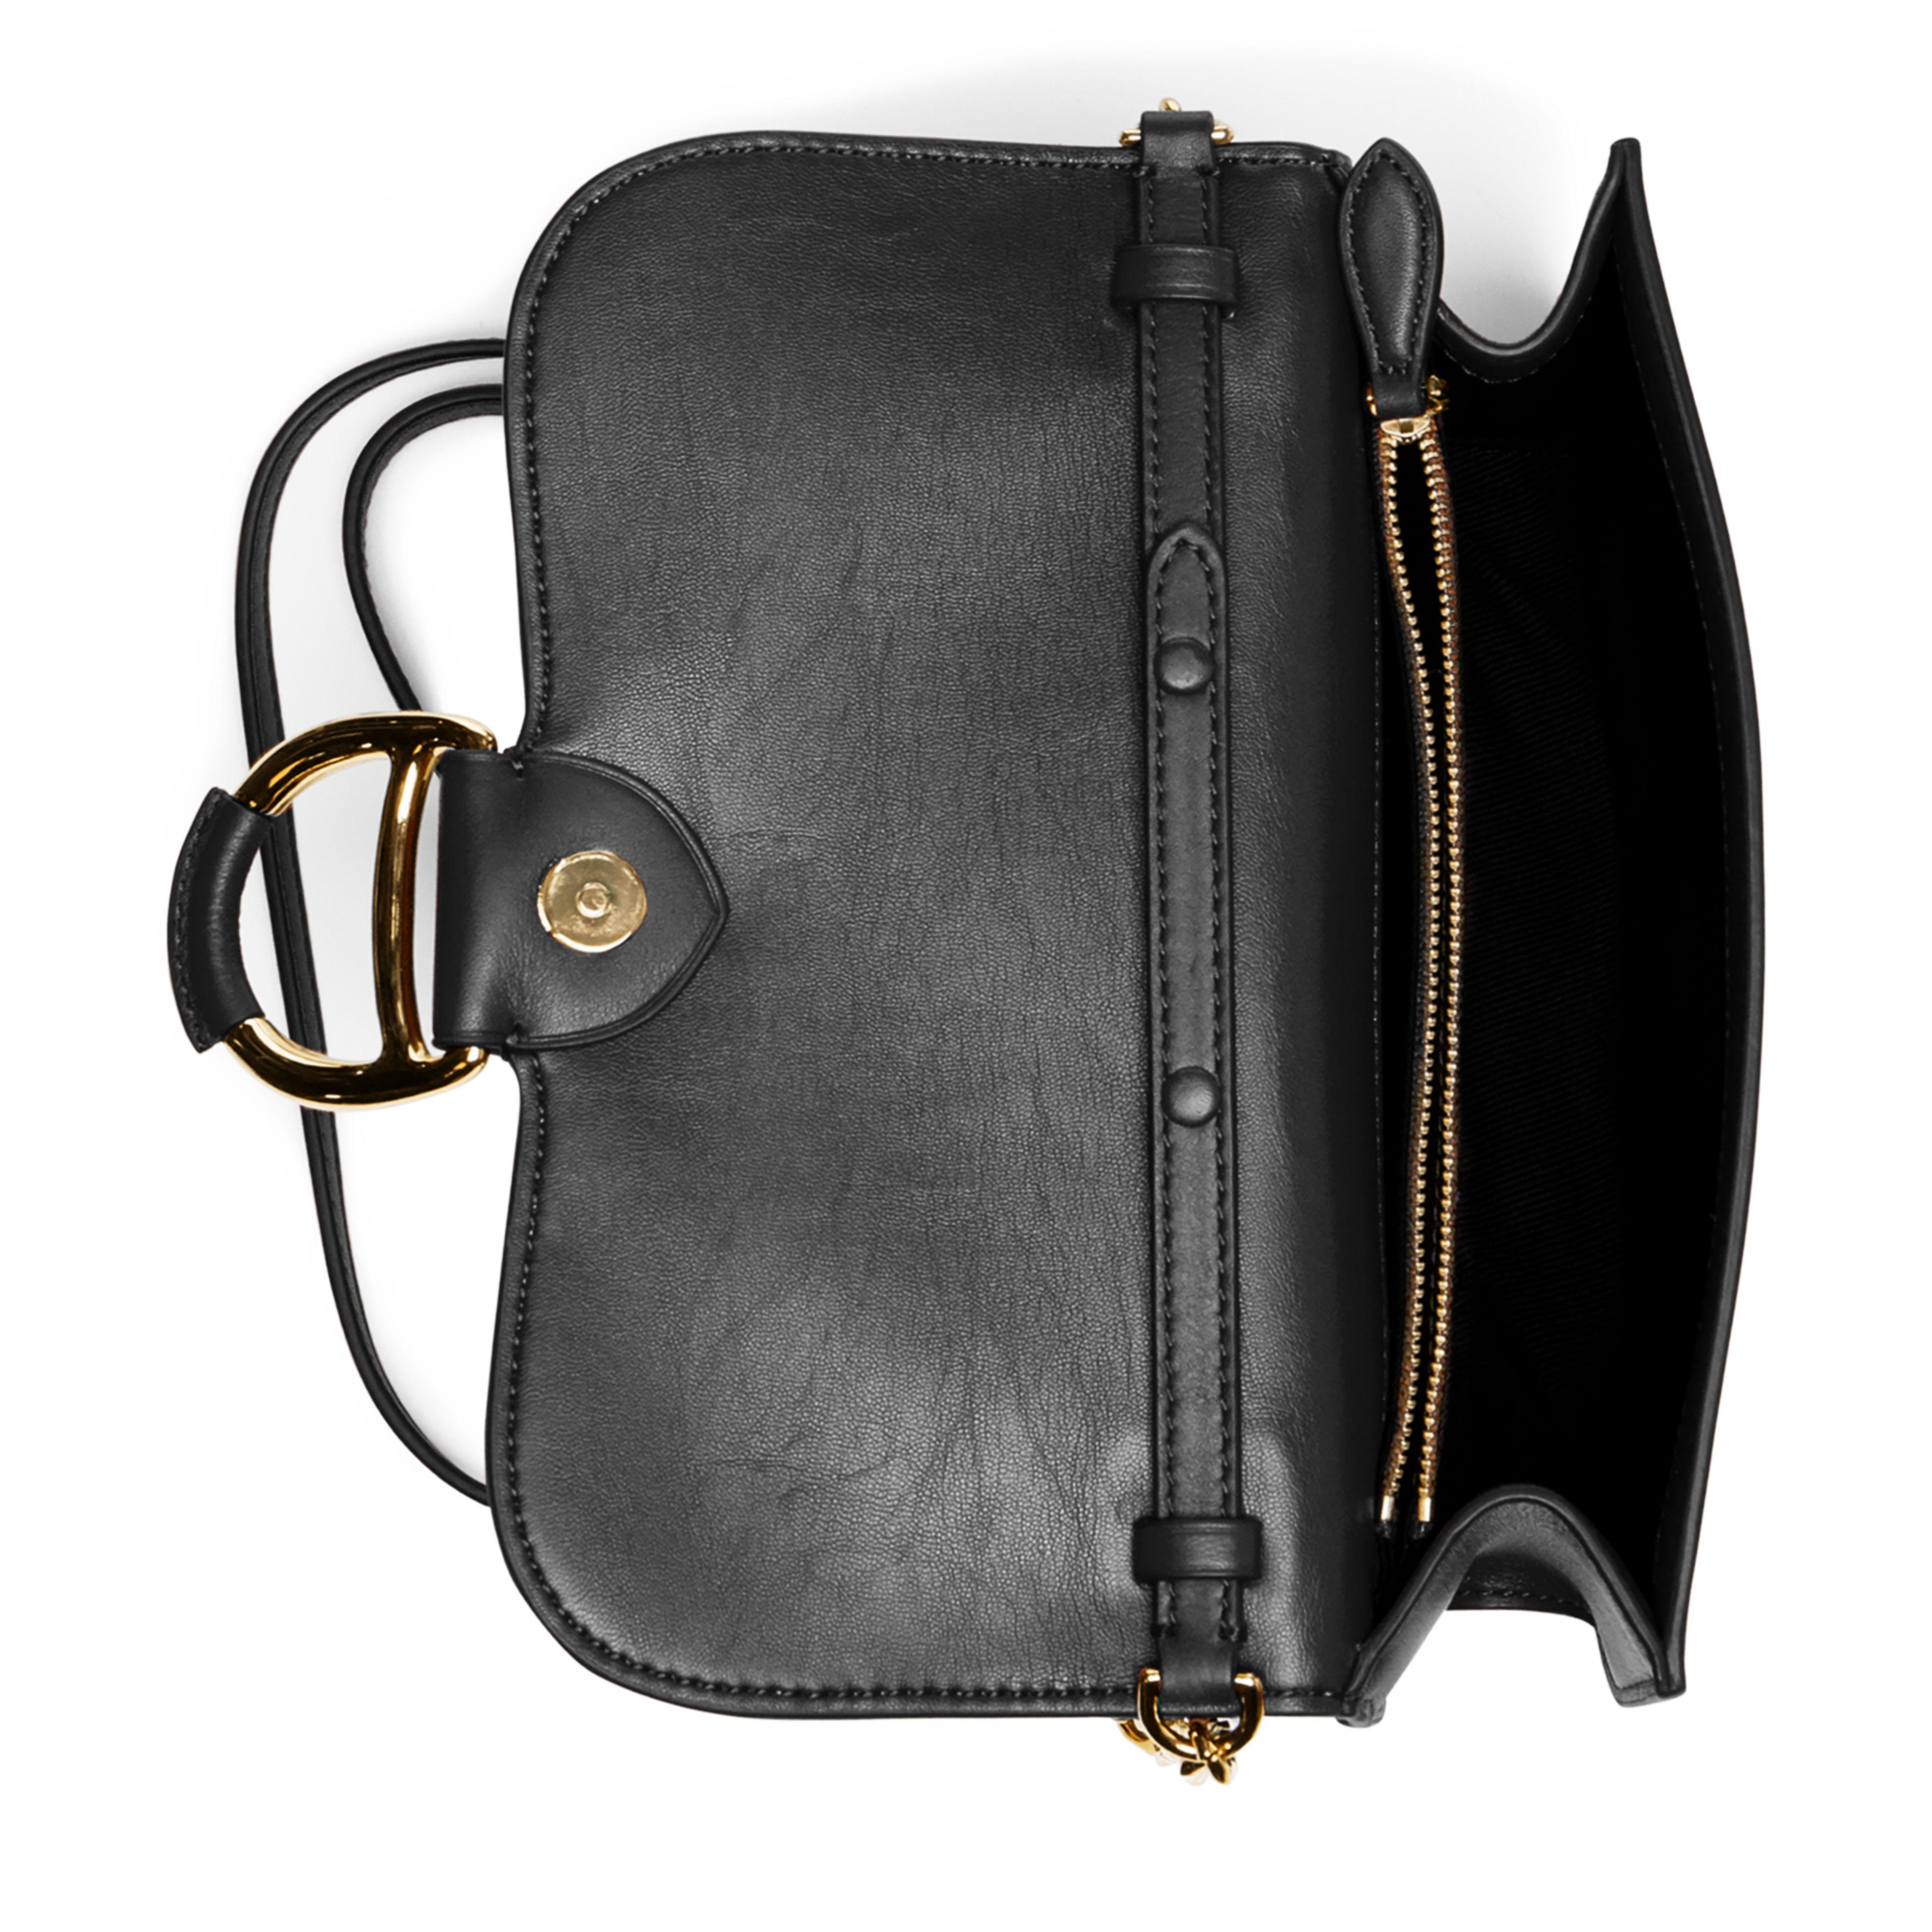 ... good lyst polo ralph lauren leather maddie crossbody bag in black b4c62  c88c6 0d5461c6a7682